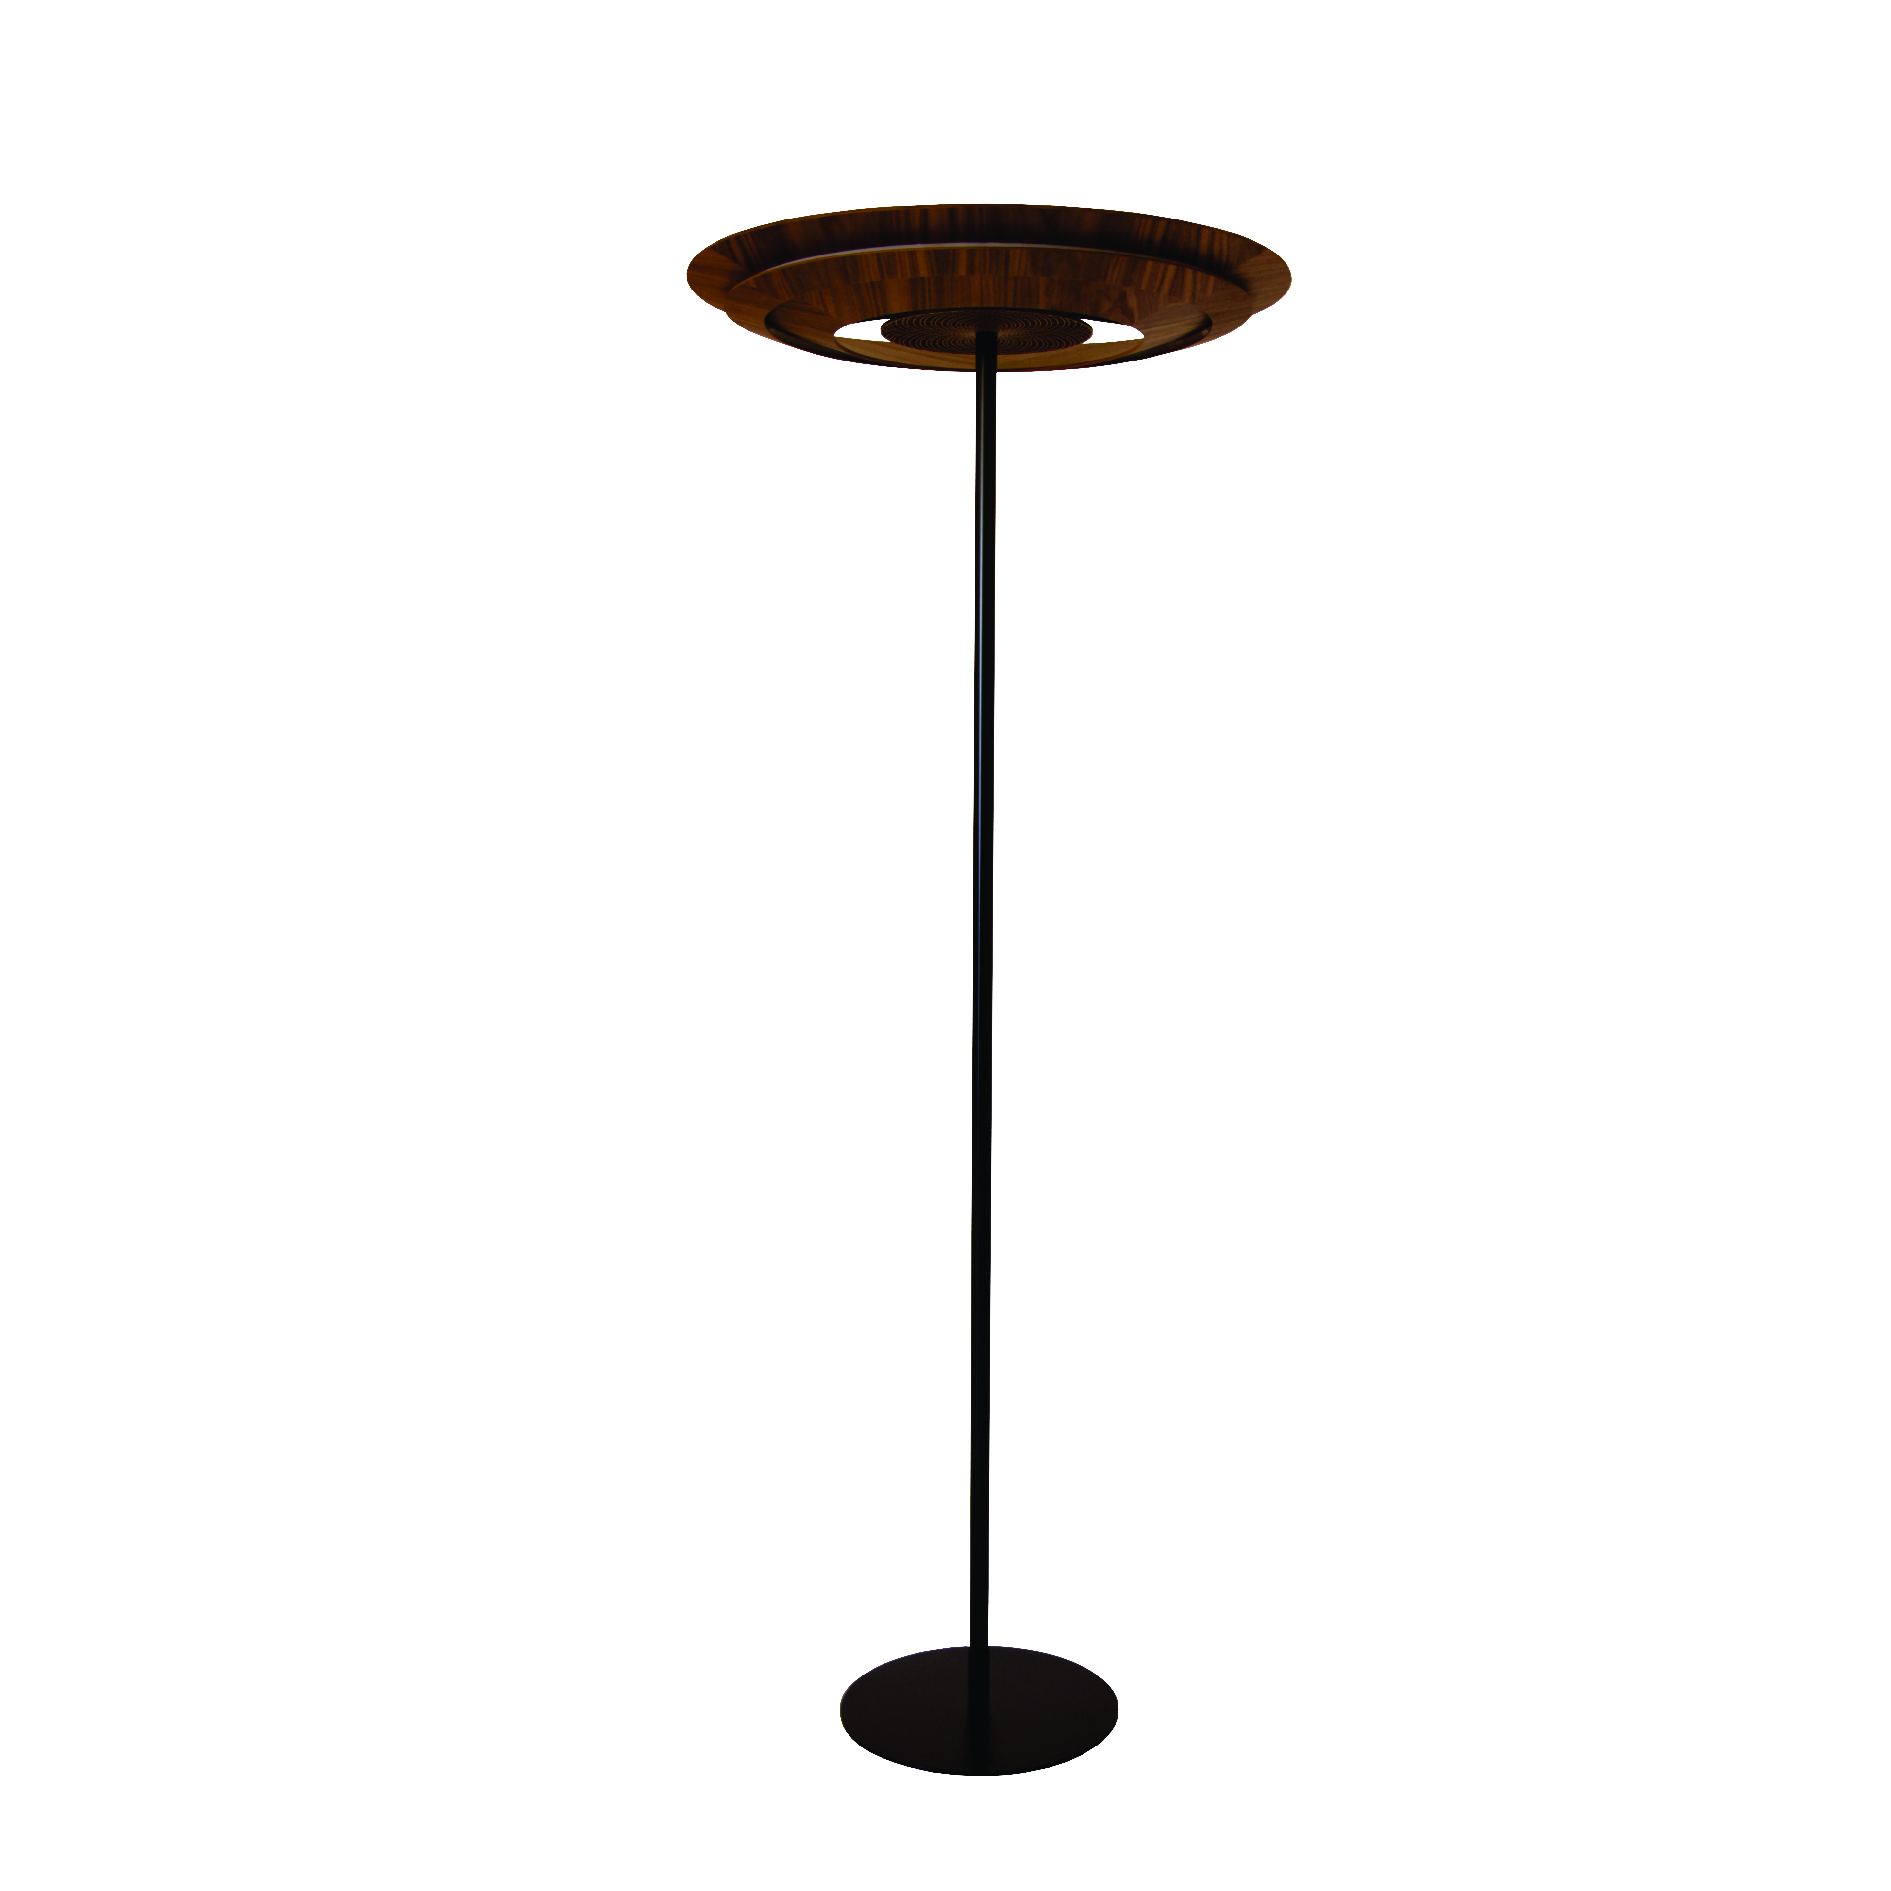 Floor Lamp Accord Curi 3124 - Curi Line Accord Lighting